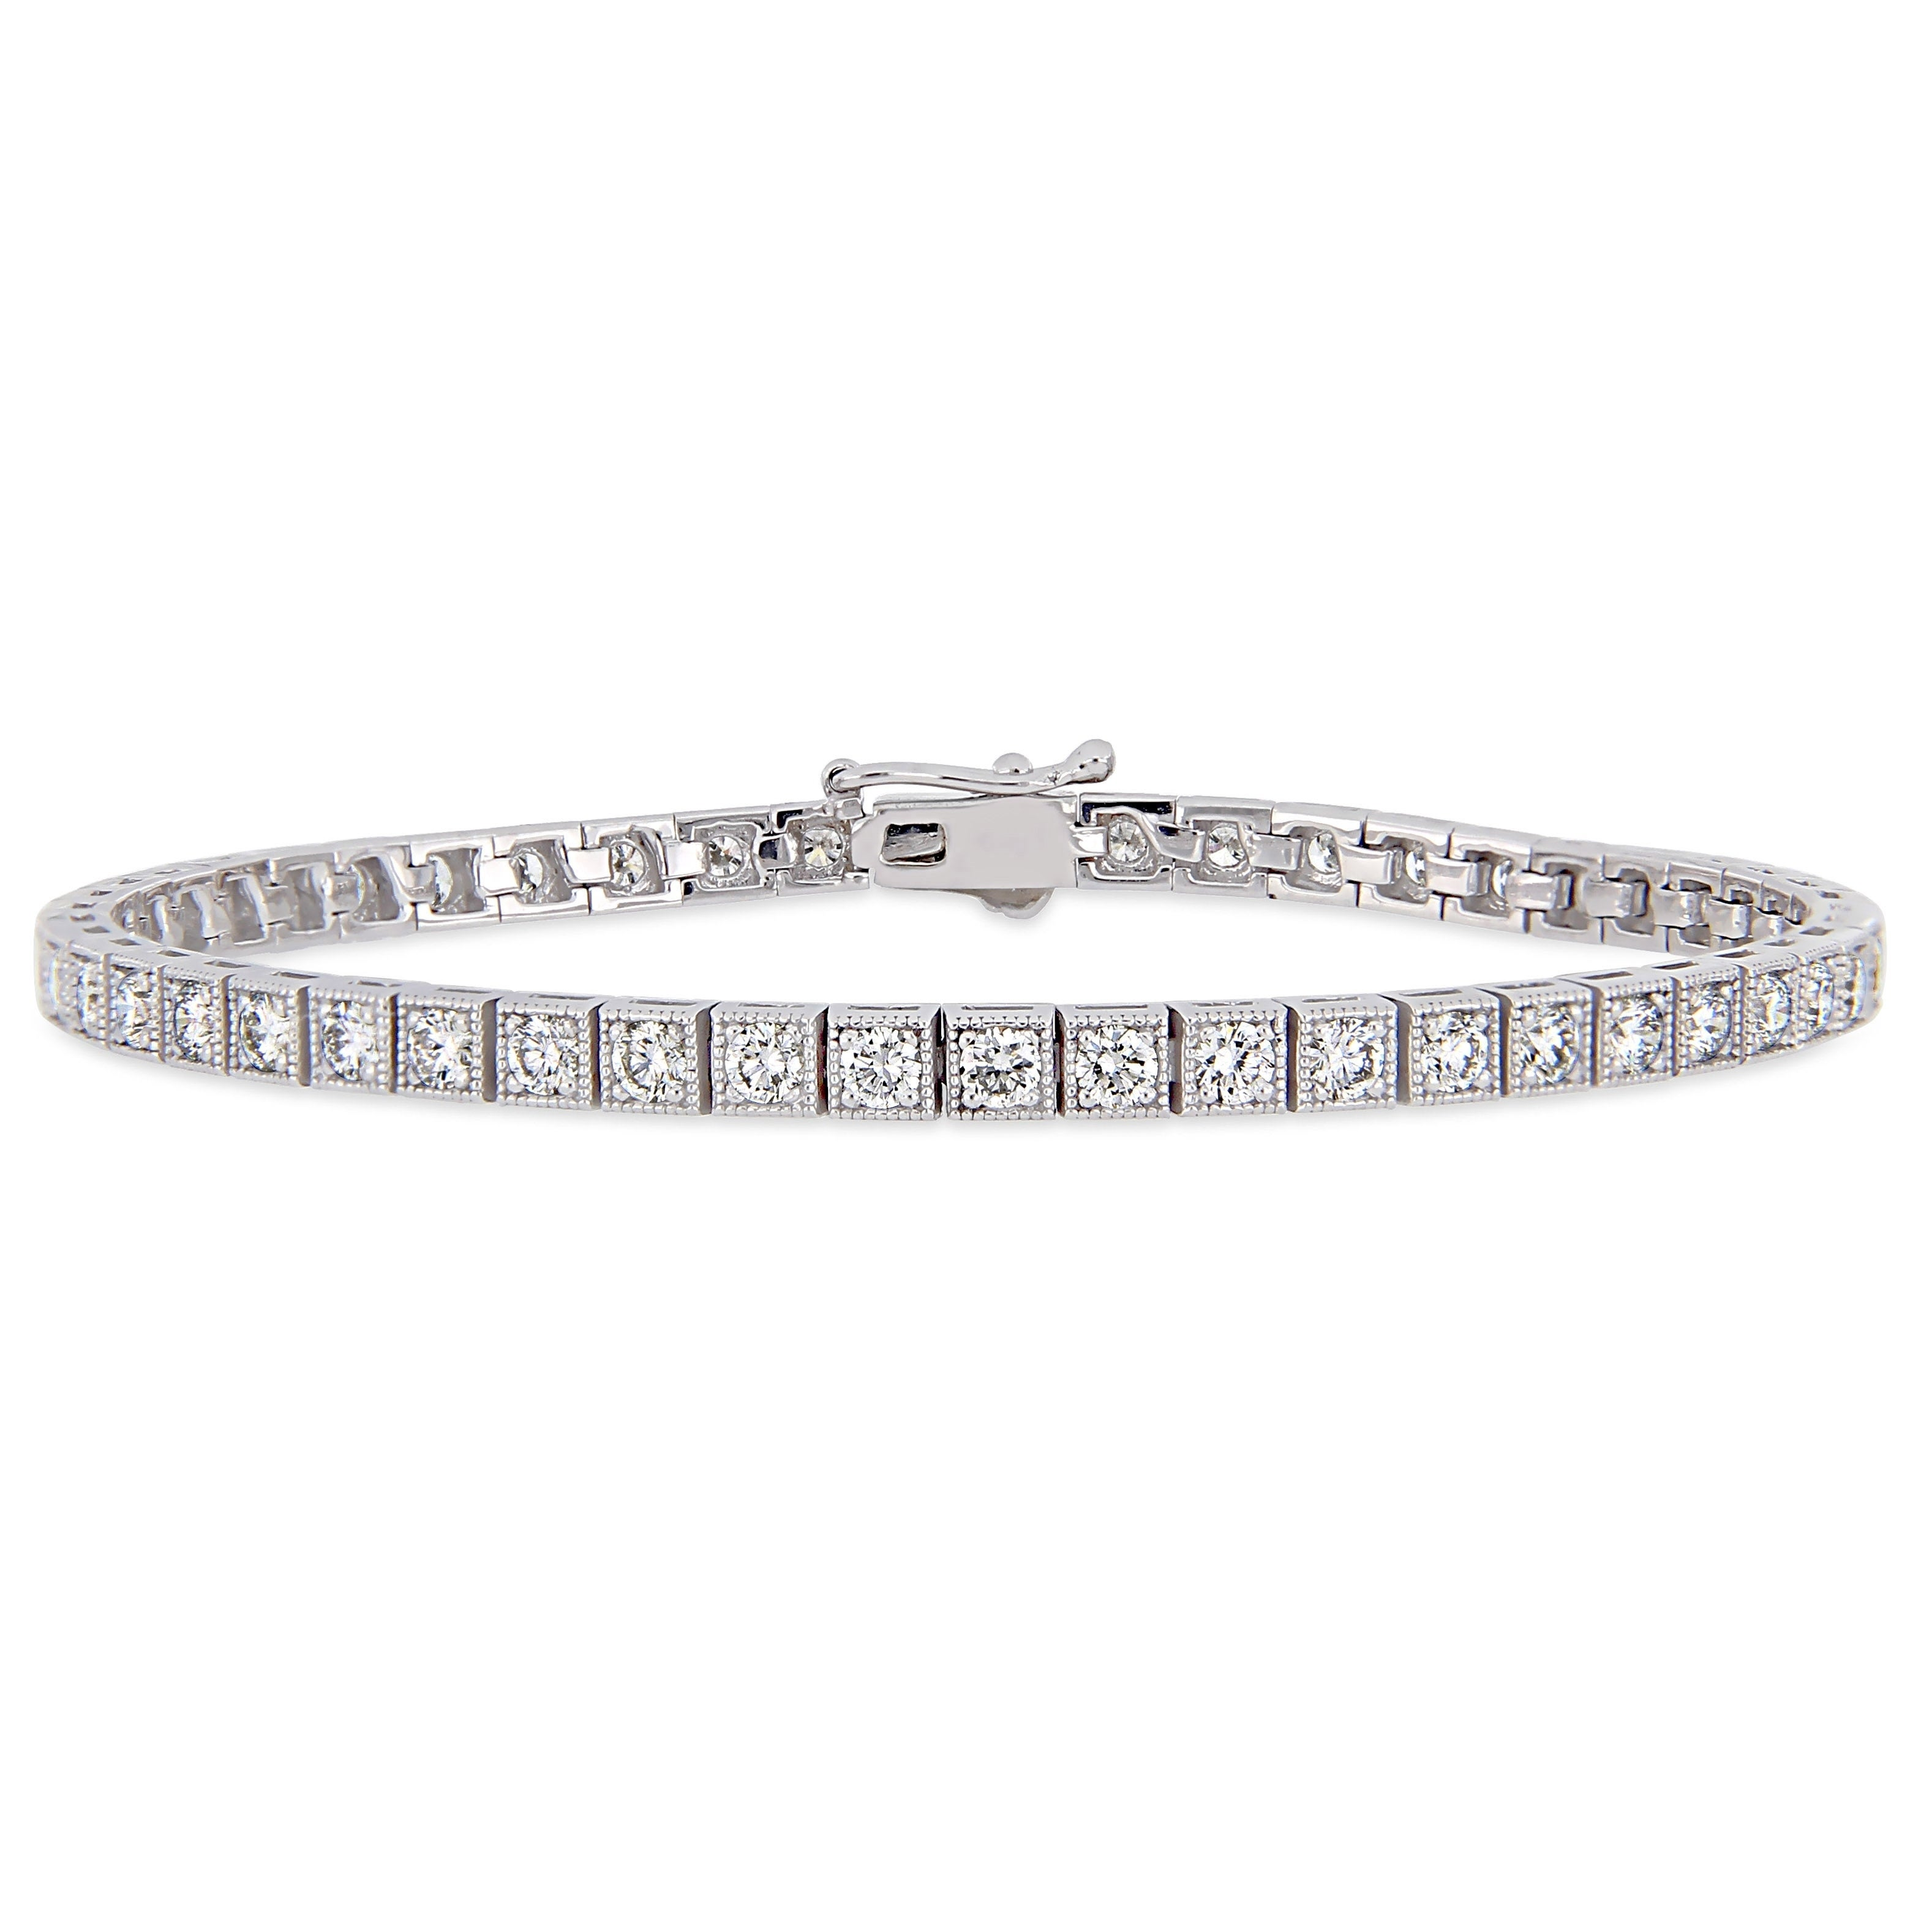 Fine Jewellery 7 Inches Women S 14k White Gold Over 3 1 2 Ct Diamond S Link Tennis Bracelet Jewellery Watches Fmj Br